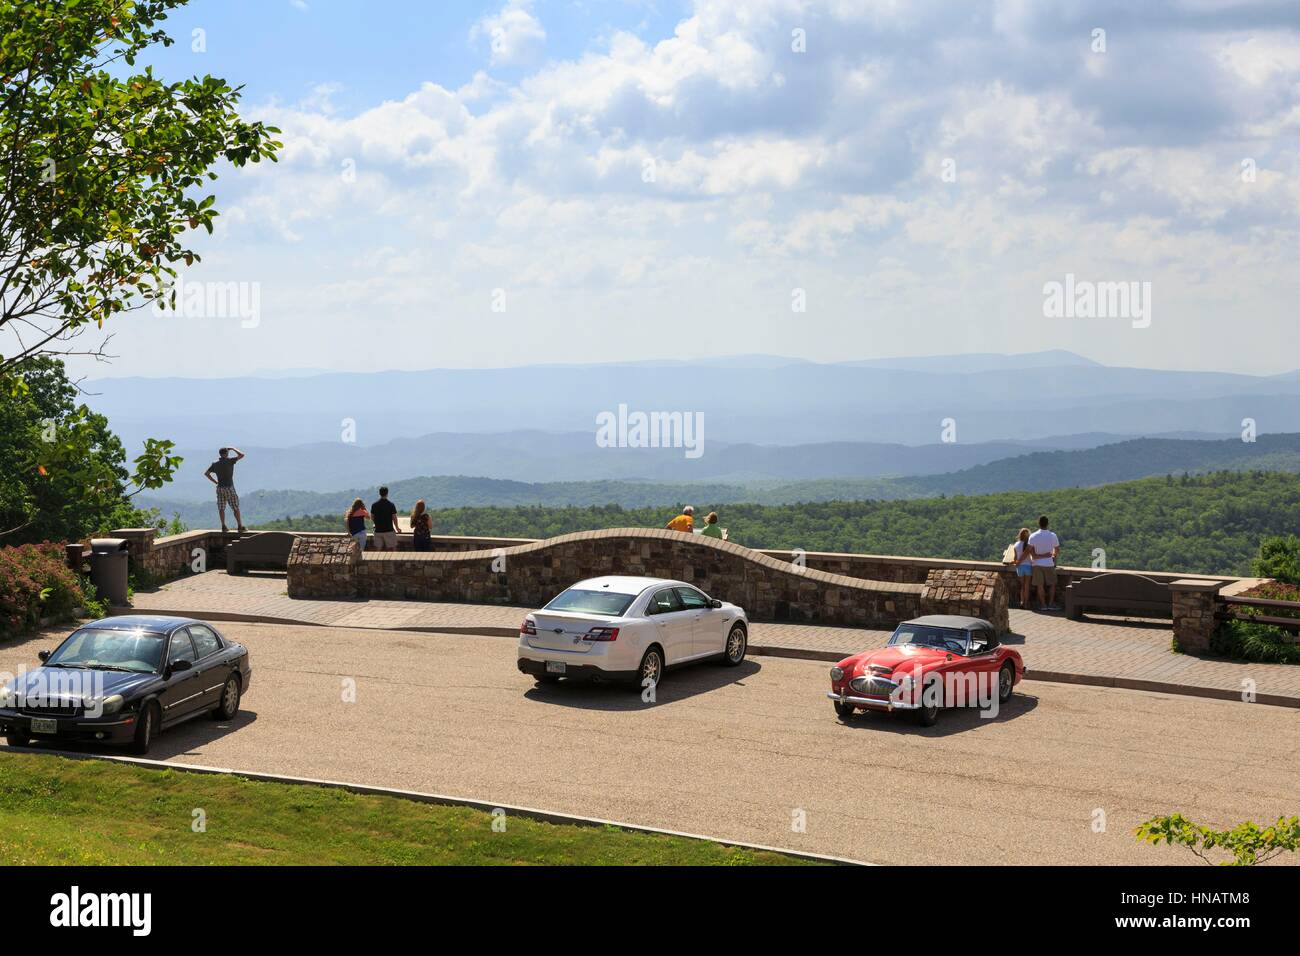 Dan Ingalls Overlook, Bath County, Virginia near Homestead Resort. - Stock Image